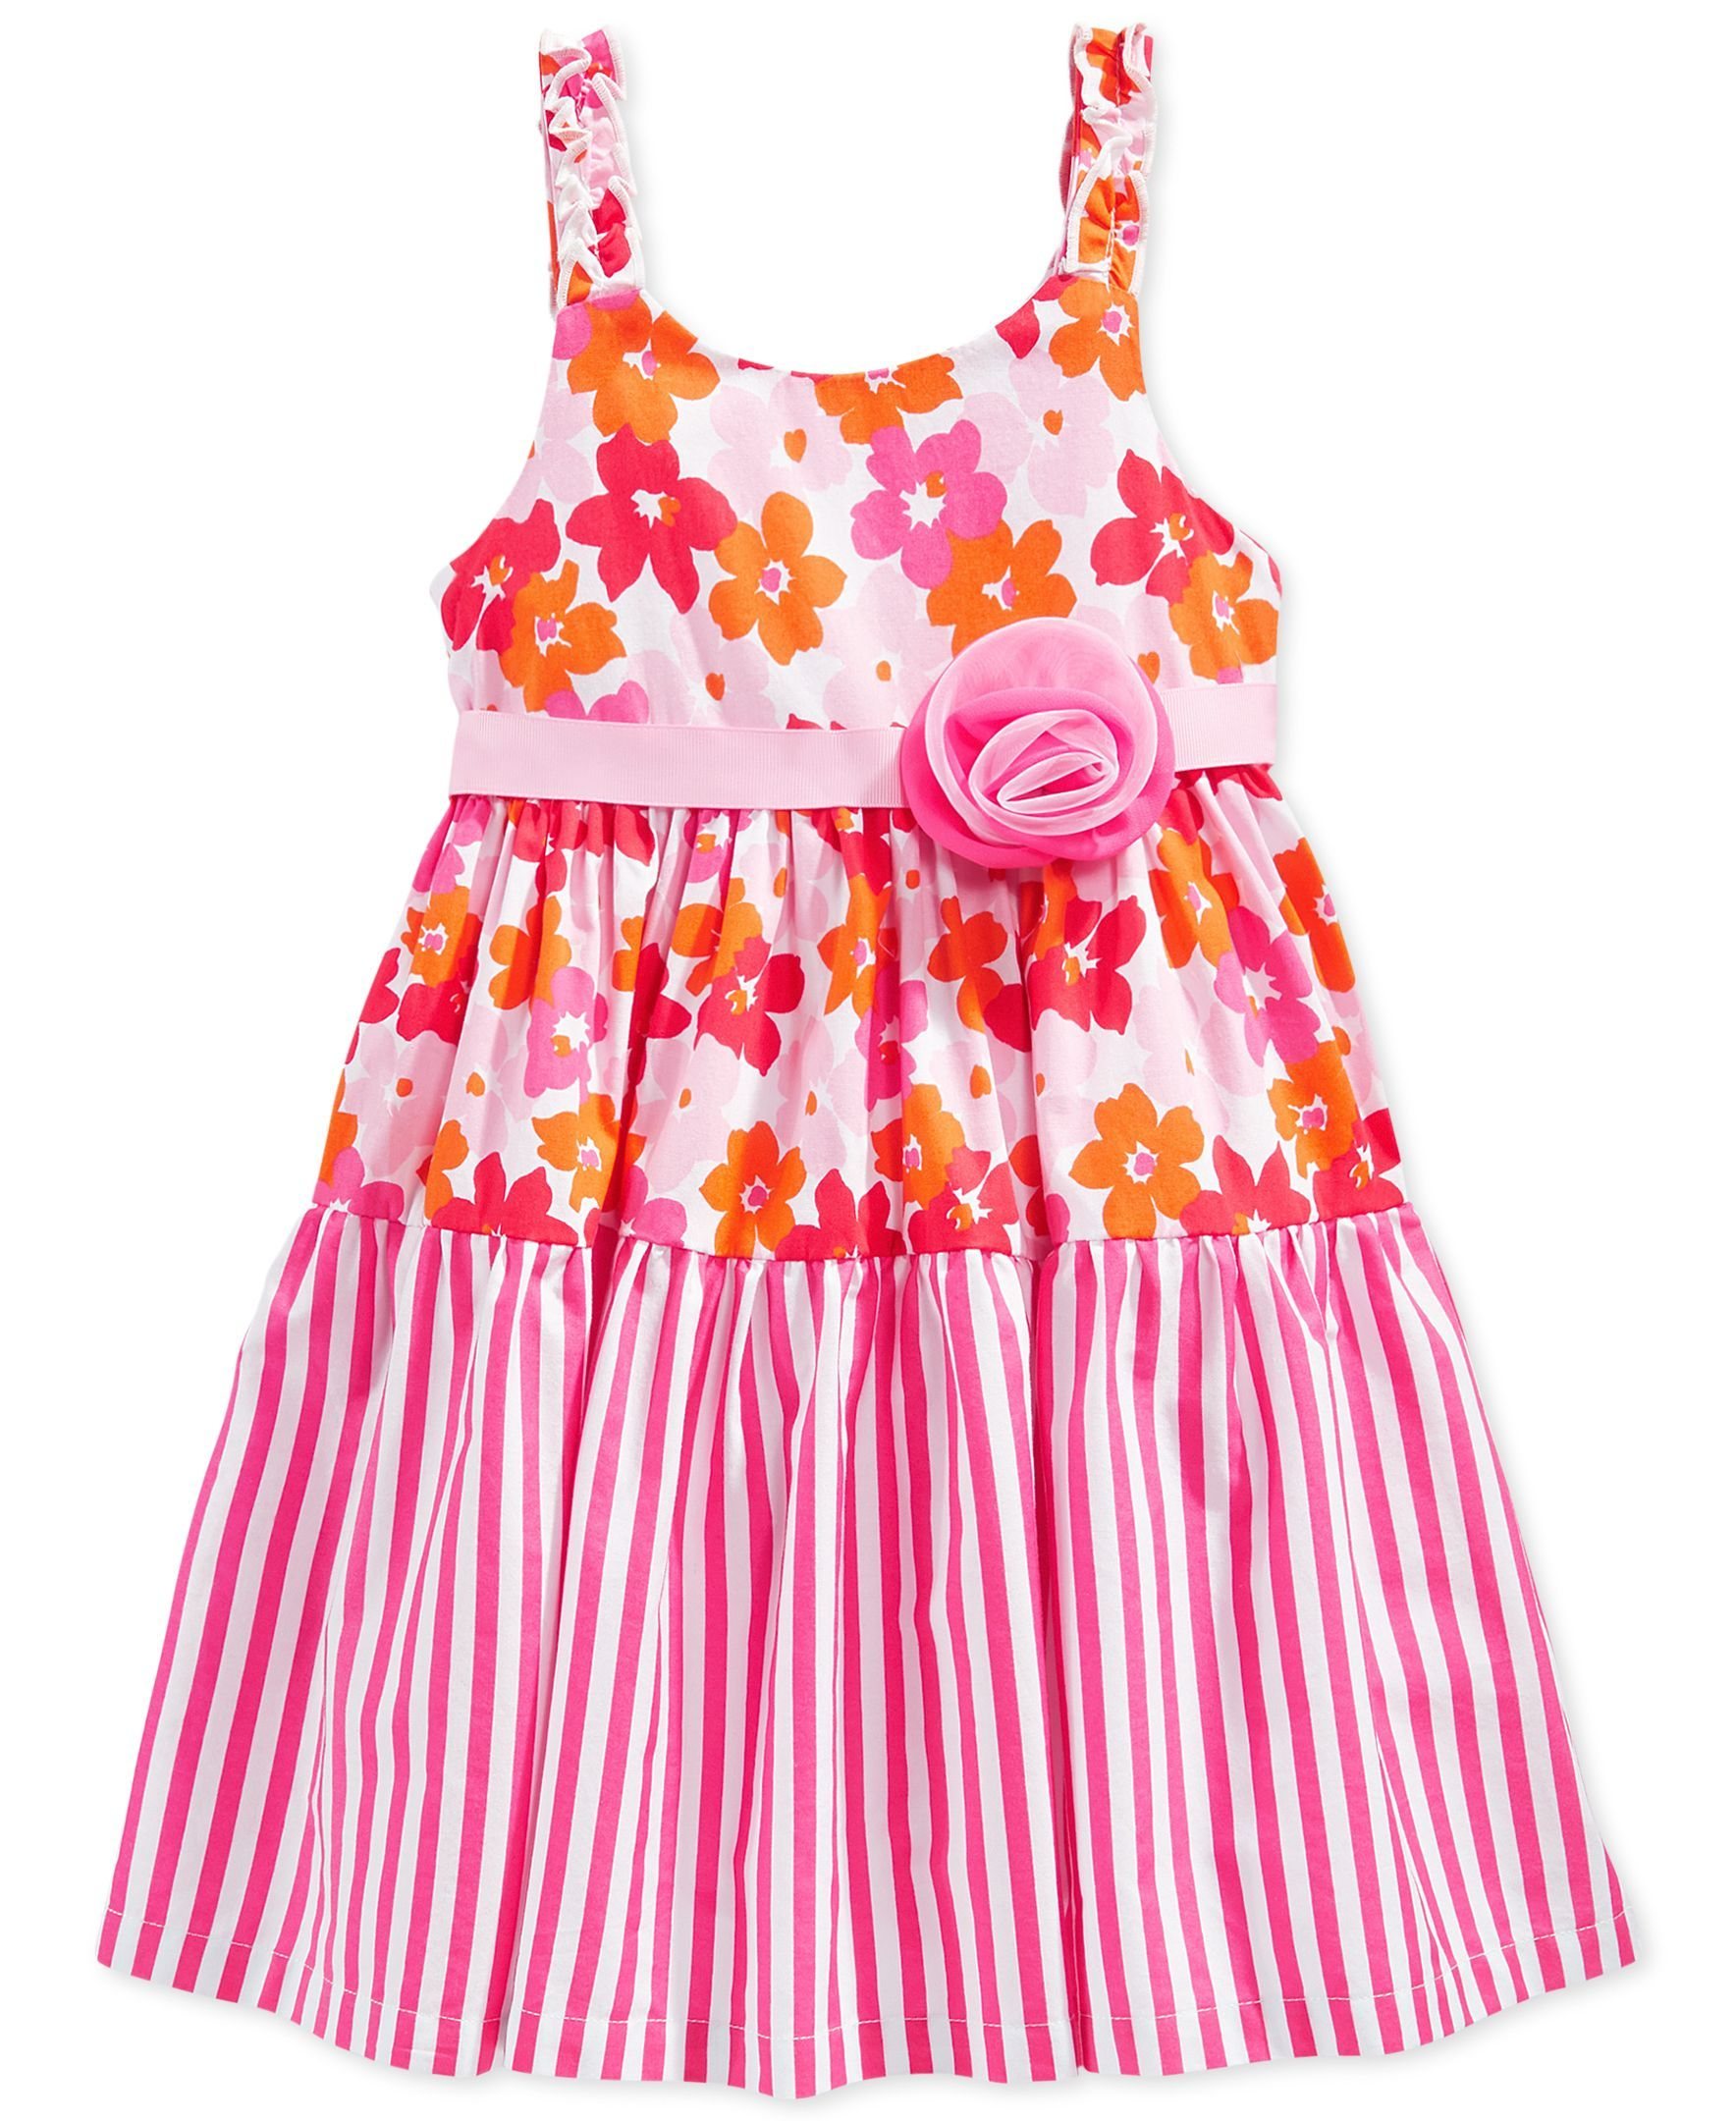 Marmellata Little Girls Mixed Print Dress Products